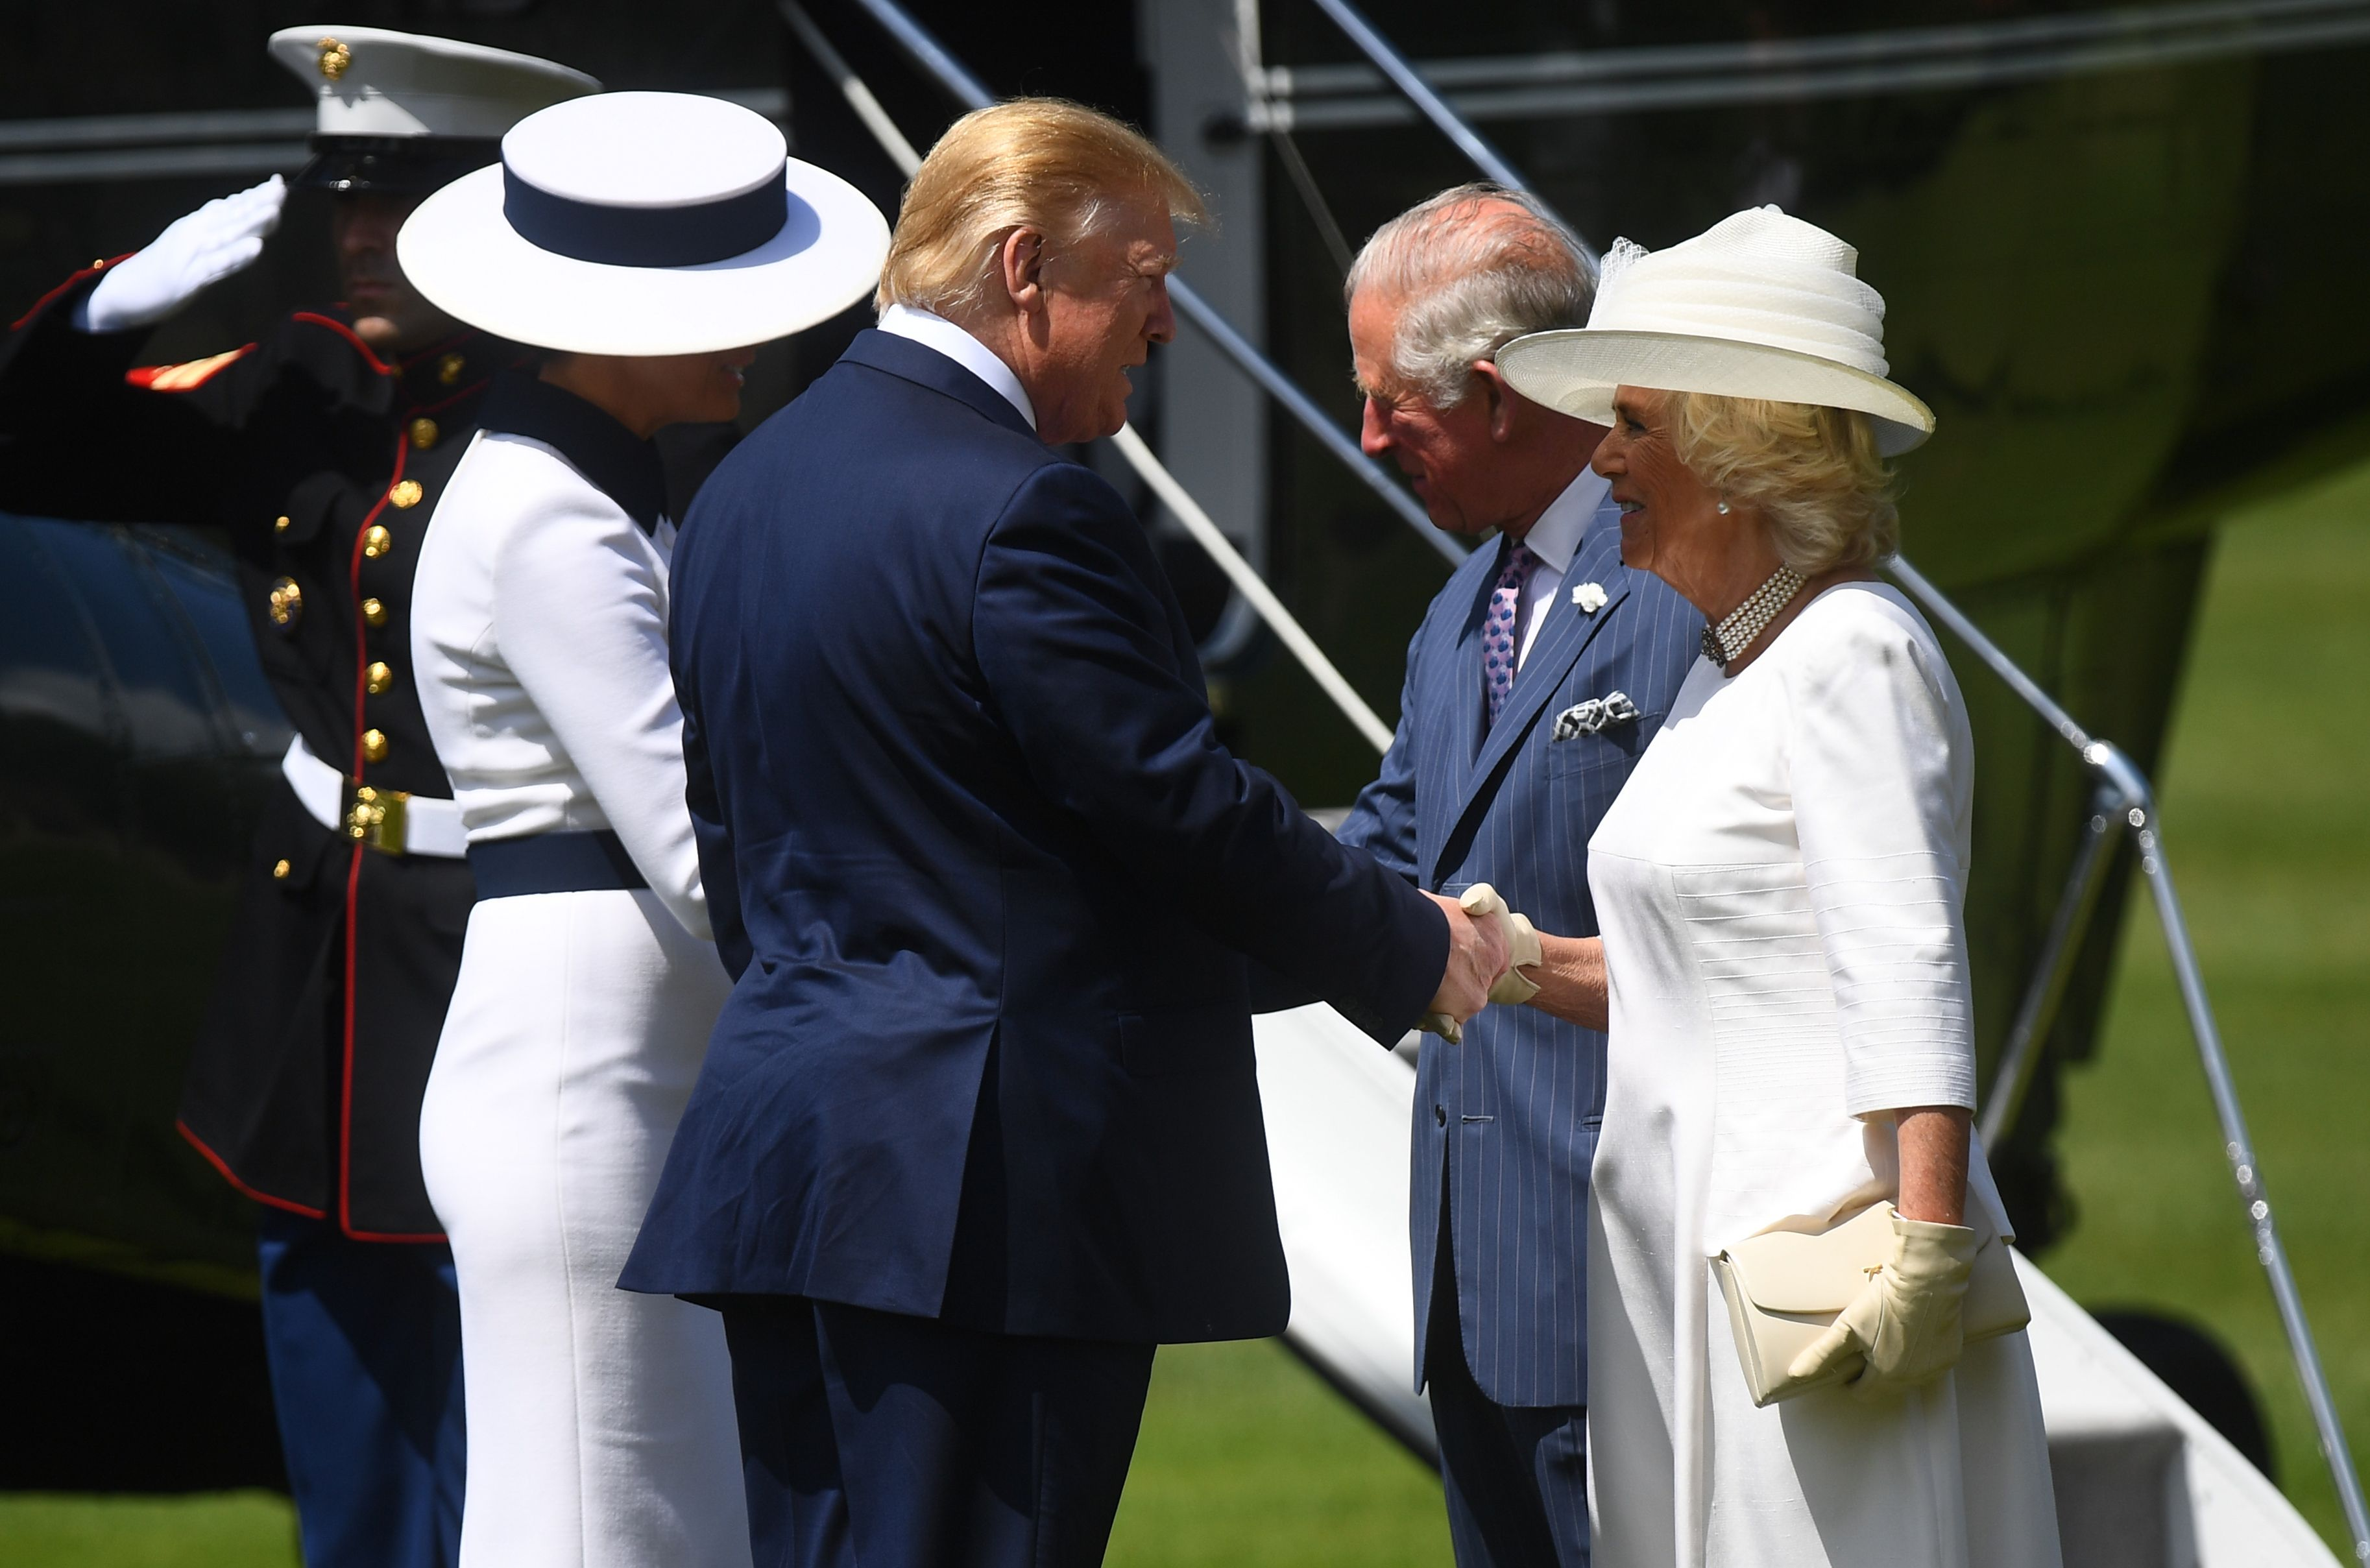 US President Donald Trump (C) and US First Lady Melania Trump (2L) are met by Britain's Prince Charles, Prince of Wales (2R) and Britain's Camilla, Duchess of Cornwall (R) after disembarking Marine One as they arrive for a welcome ceremony at Buckingham Palace in central London on June 3, 2019, on the first day of the US president and First Lady's three-day State Visit to the UK. - Britain rolled out the red carpet for US President Donald Trump on June 3 as he arrived in Britain for a state visit already overshadowed by his outspoken remarks on Brexit. (Photo by Victoria Jones / POOL / AFP)        (Photo credit should read VICTORIA JONES/AFP/Getty Images)